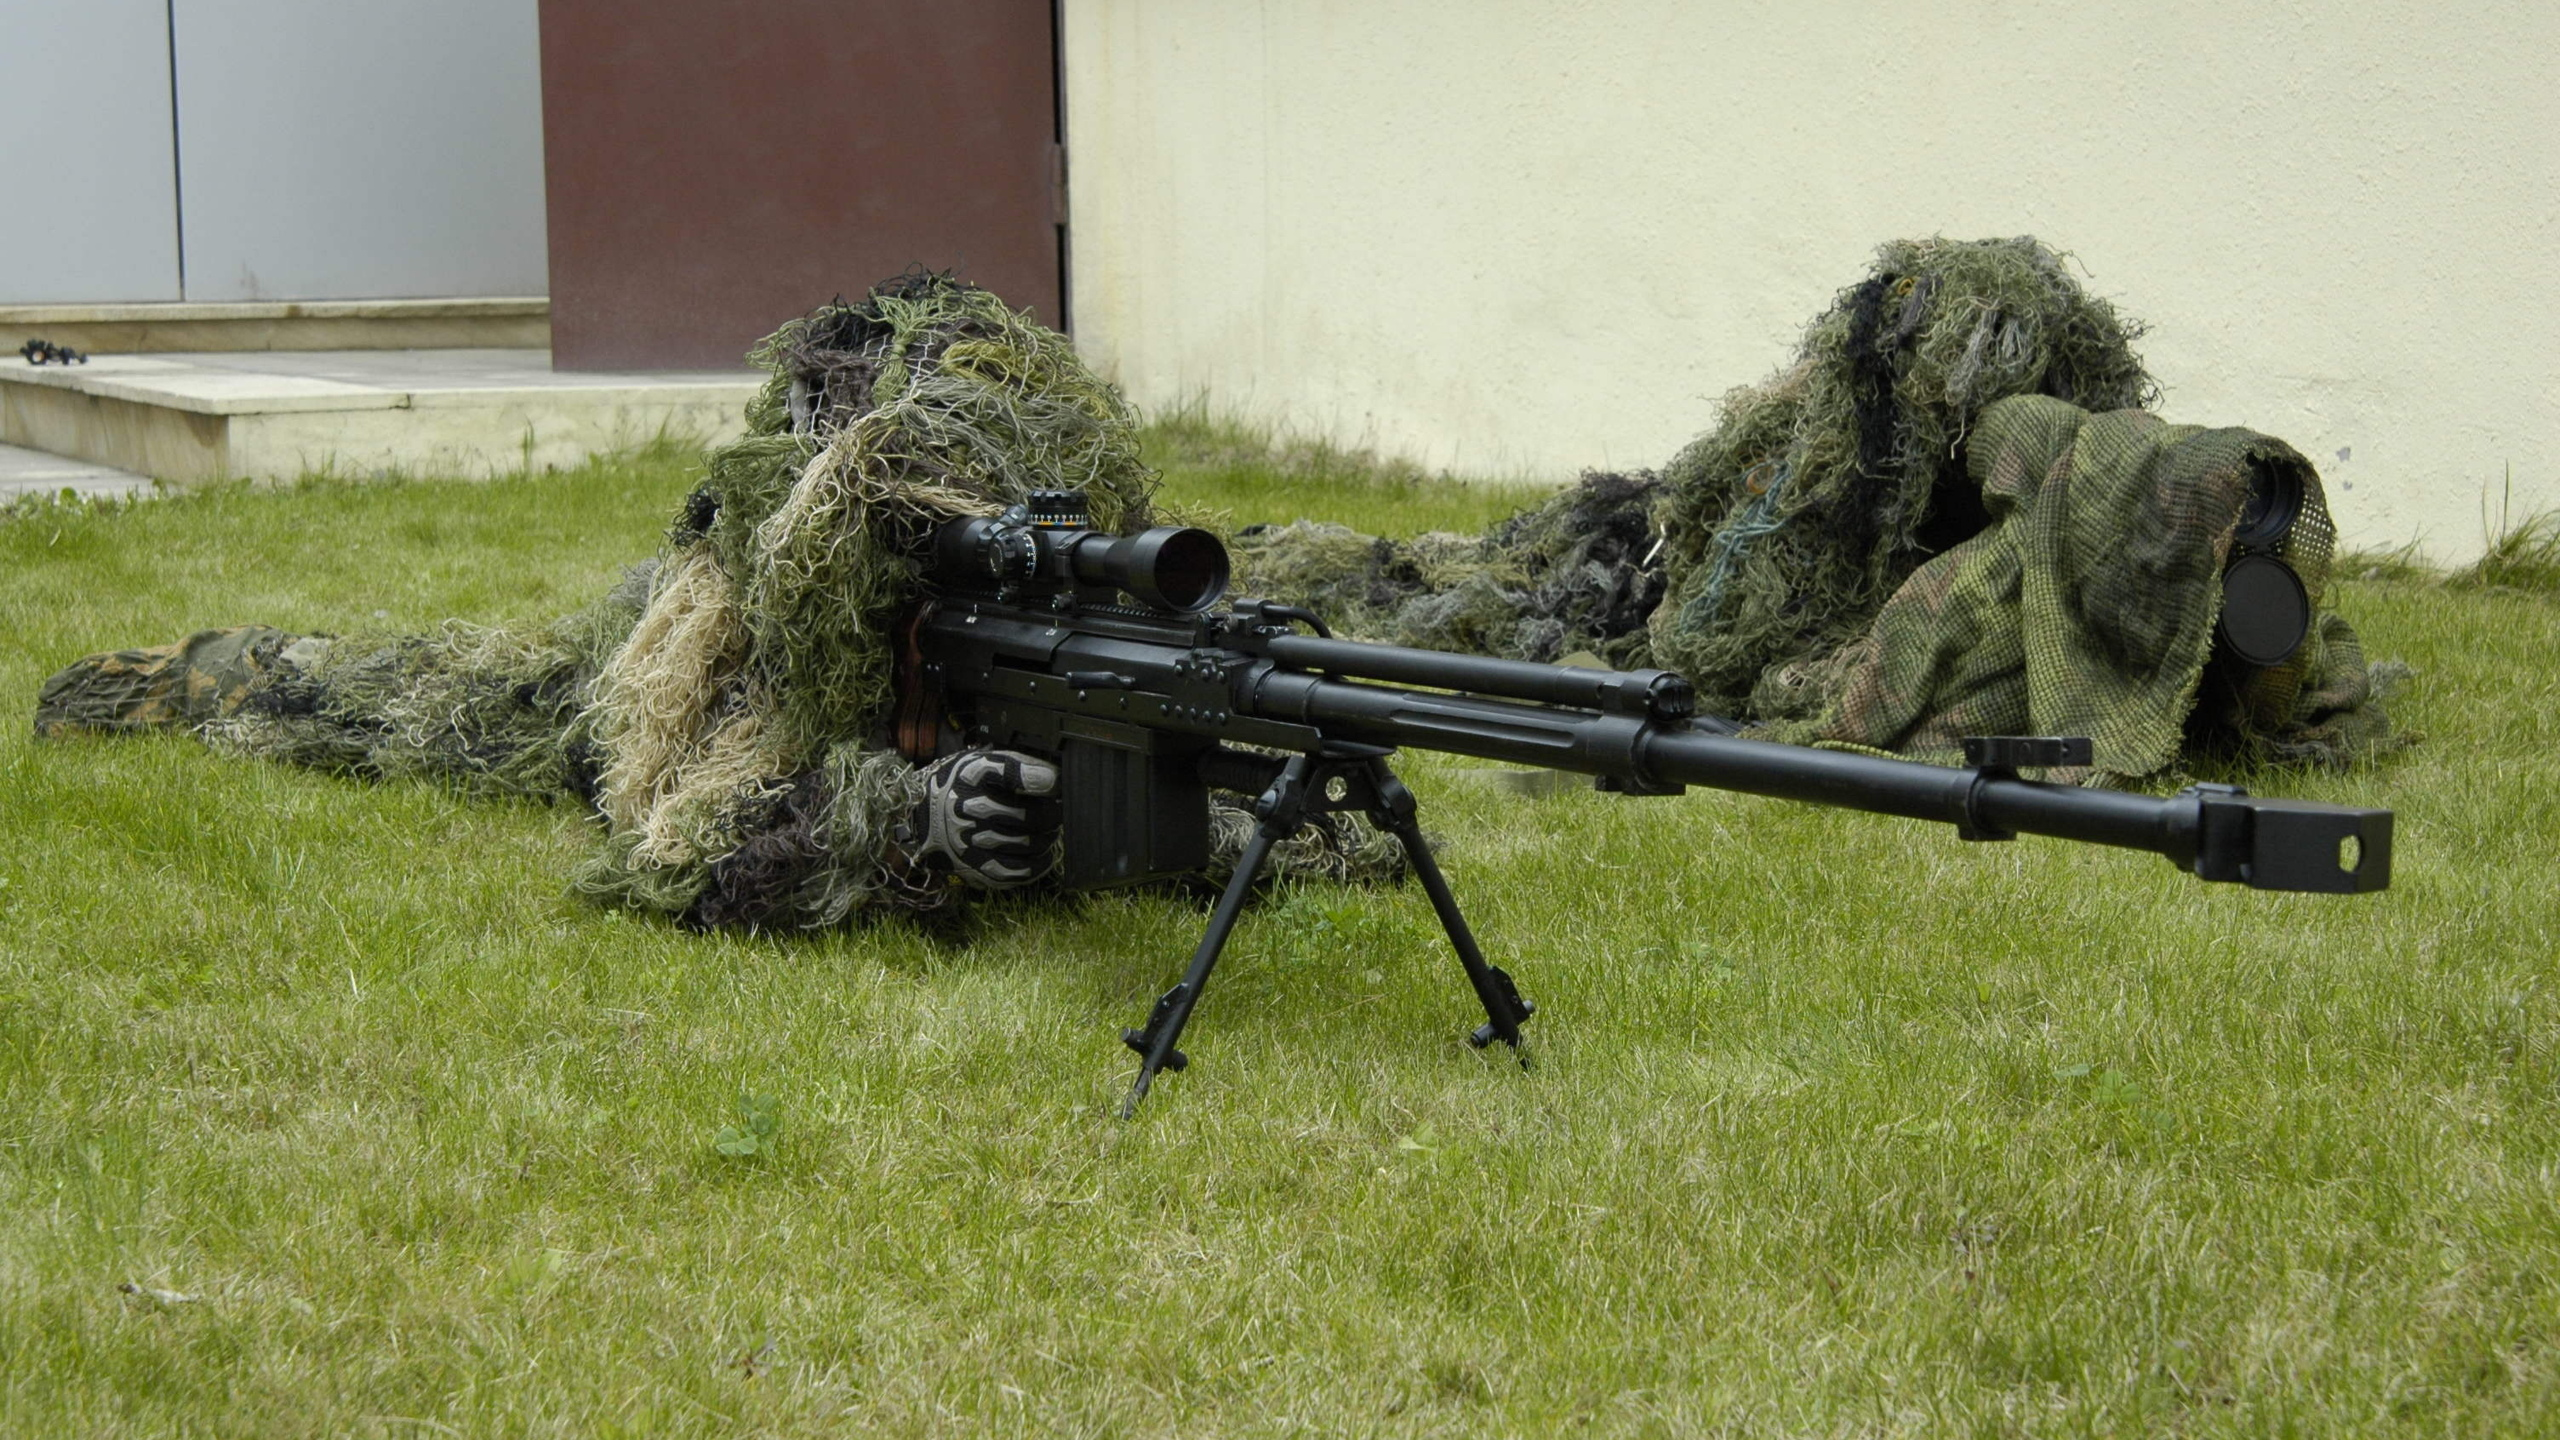 ist-14.5, istiglal, sniper rifle, anti-material rifle, снайперская винтовка